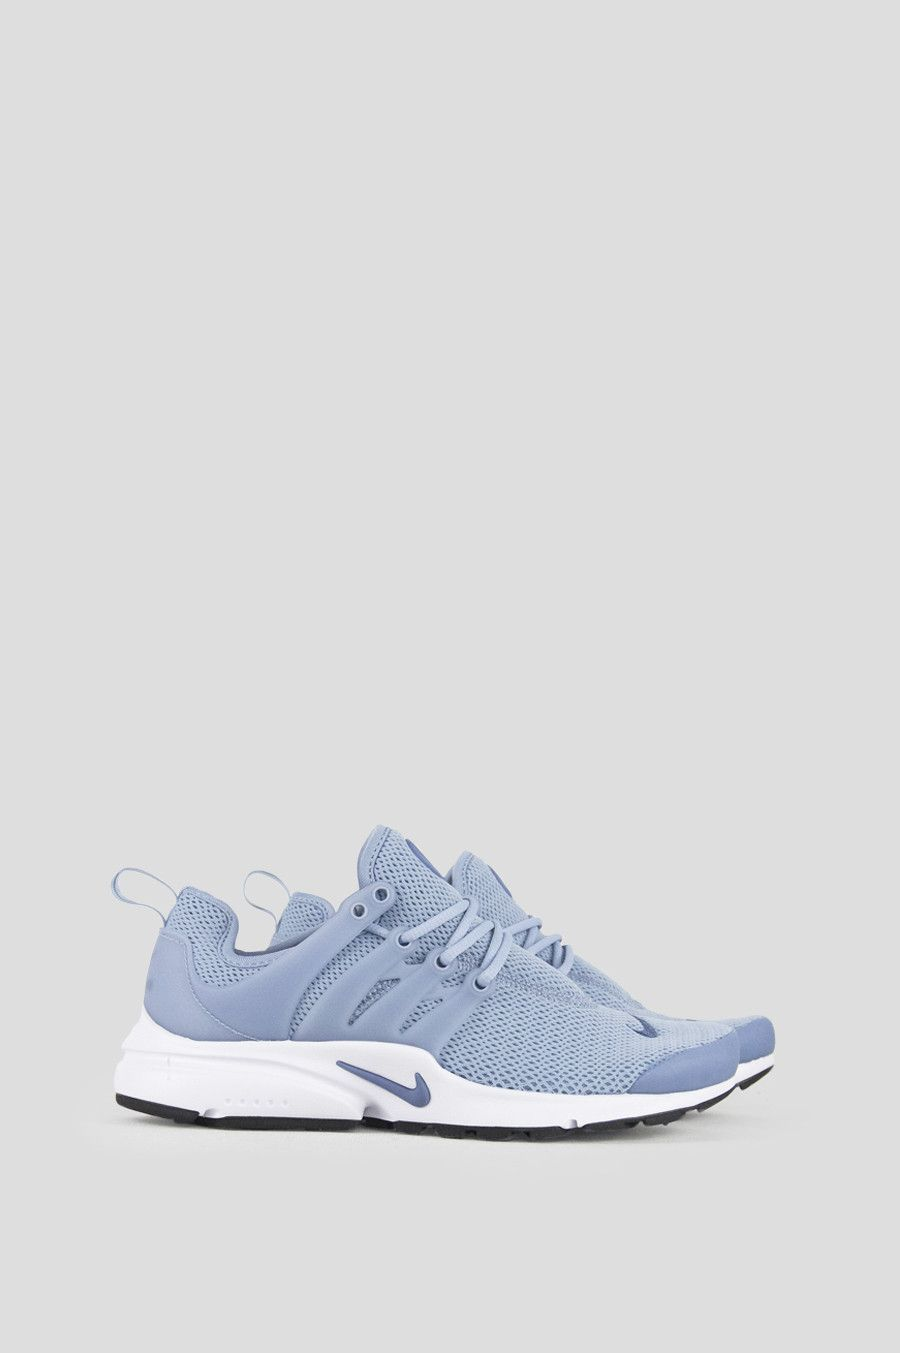 0b63037144e15 The Nike Air Presto Women's Shoe is inspired by the comfort and minimalism  of a classic T-shirt for lightweight everyday comfort. - Product Code:  878068-400 ...